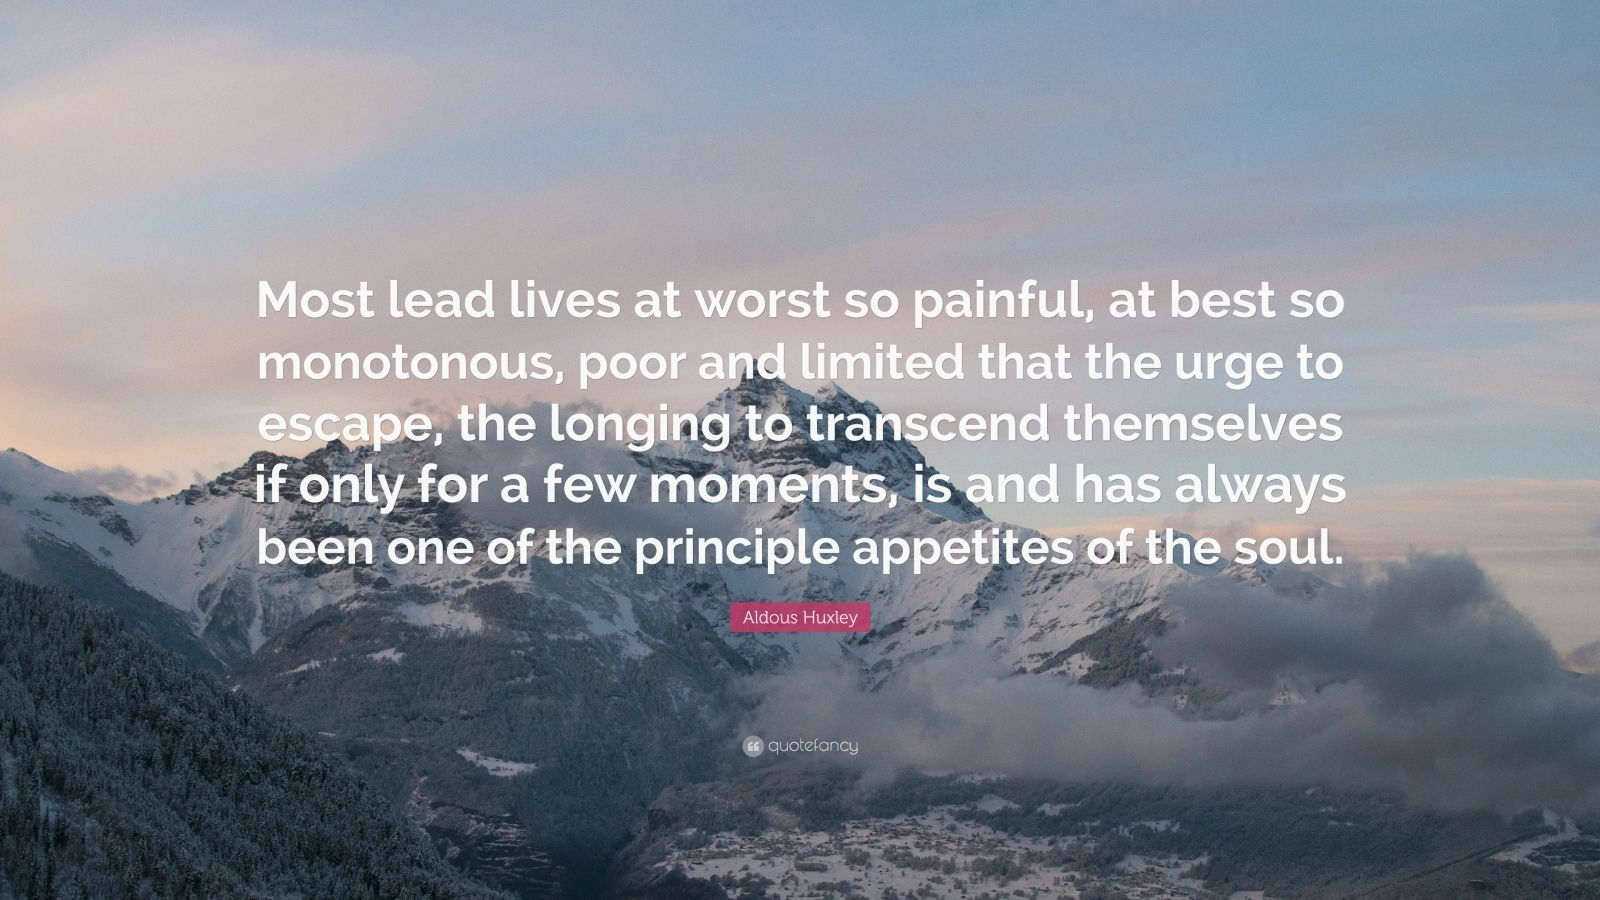 """Aldous Huxley Quote: """"Most lead lives at worst so painful, at best so monotonous, poor and limited that the urge to escape, the longing to transcend themselves if only for a few moments, is and has always been one of the principle appetites of the soul."""""""